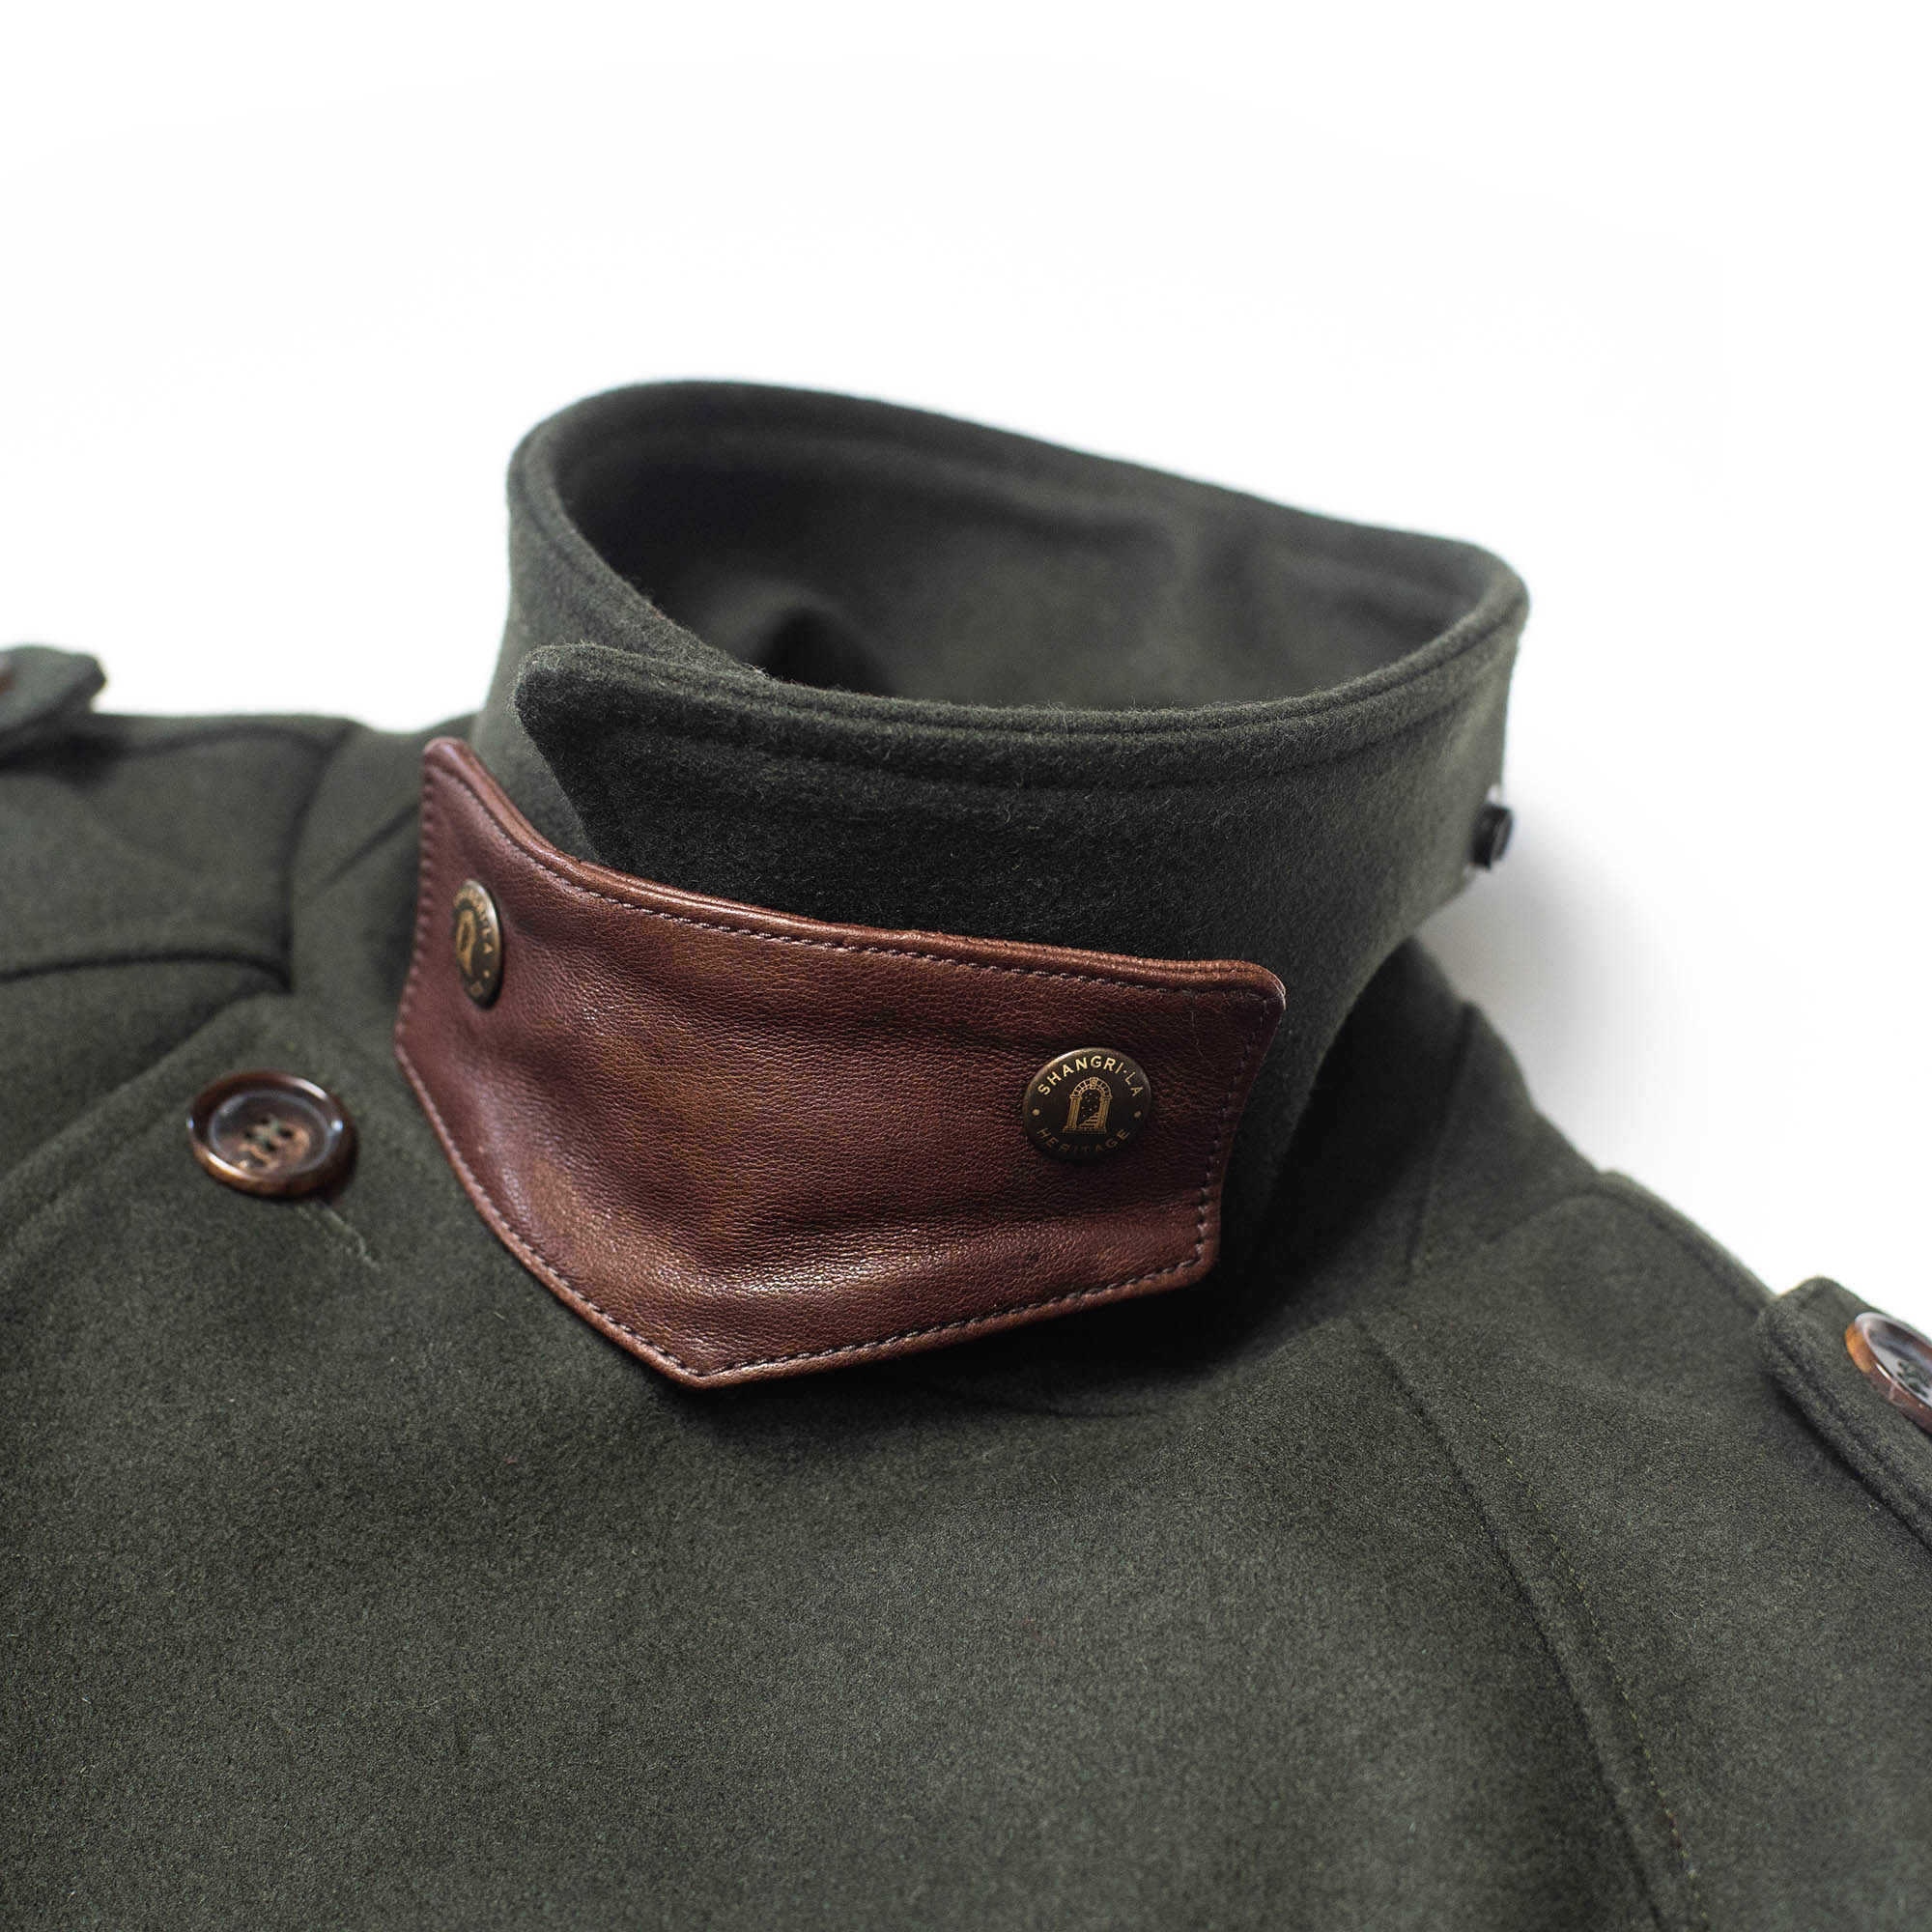 shangri-la-heritage-stelvio-forest-green-melton-wool-dispatch-rider-coat-still-life-collar